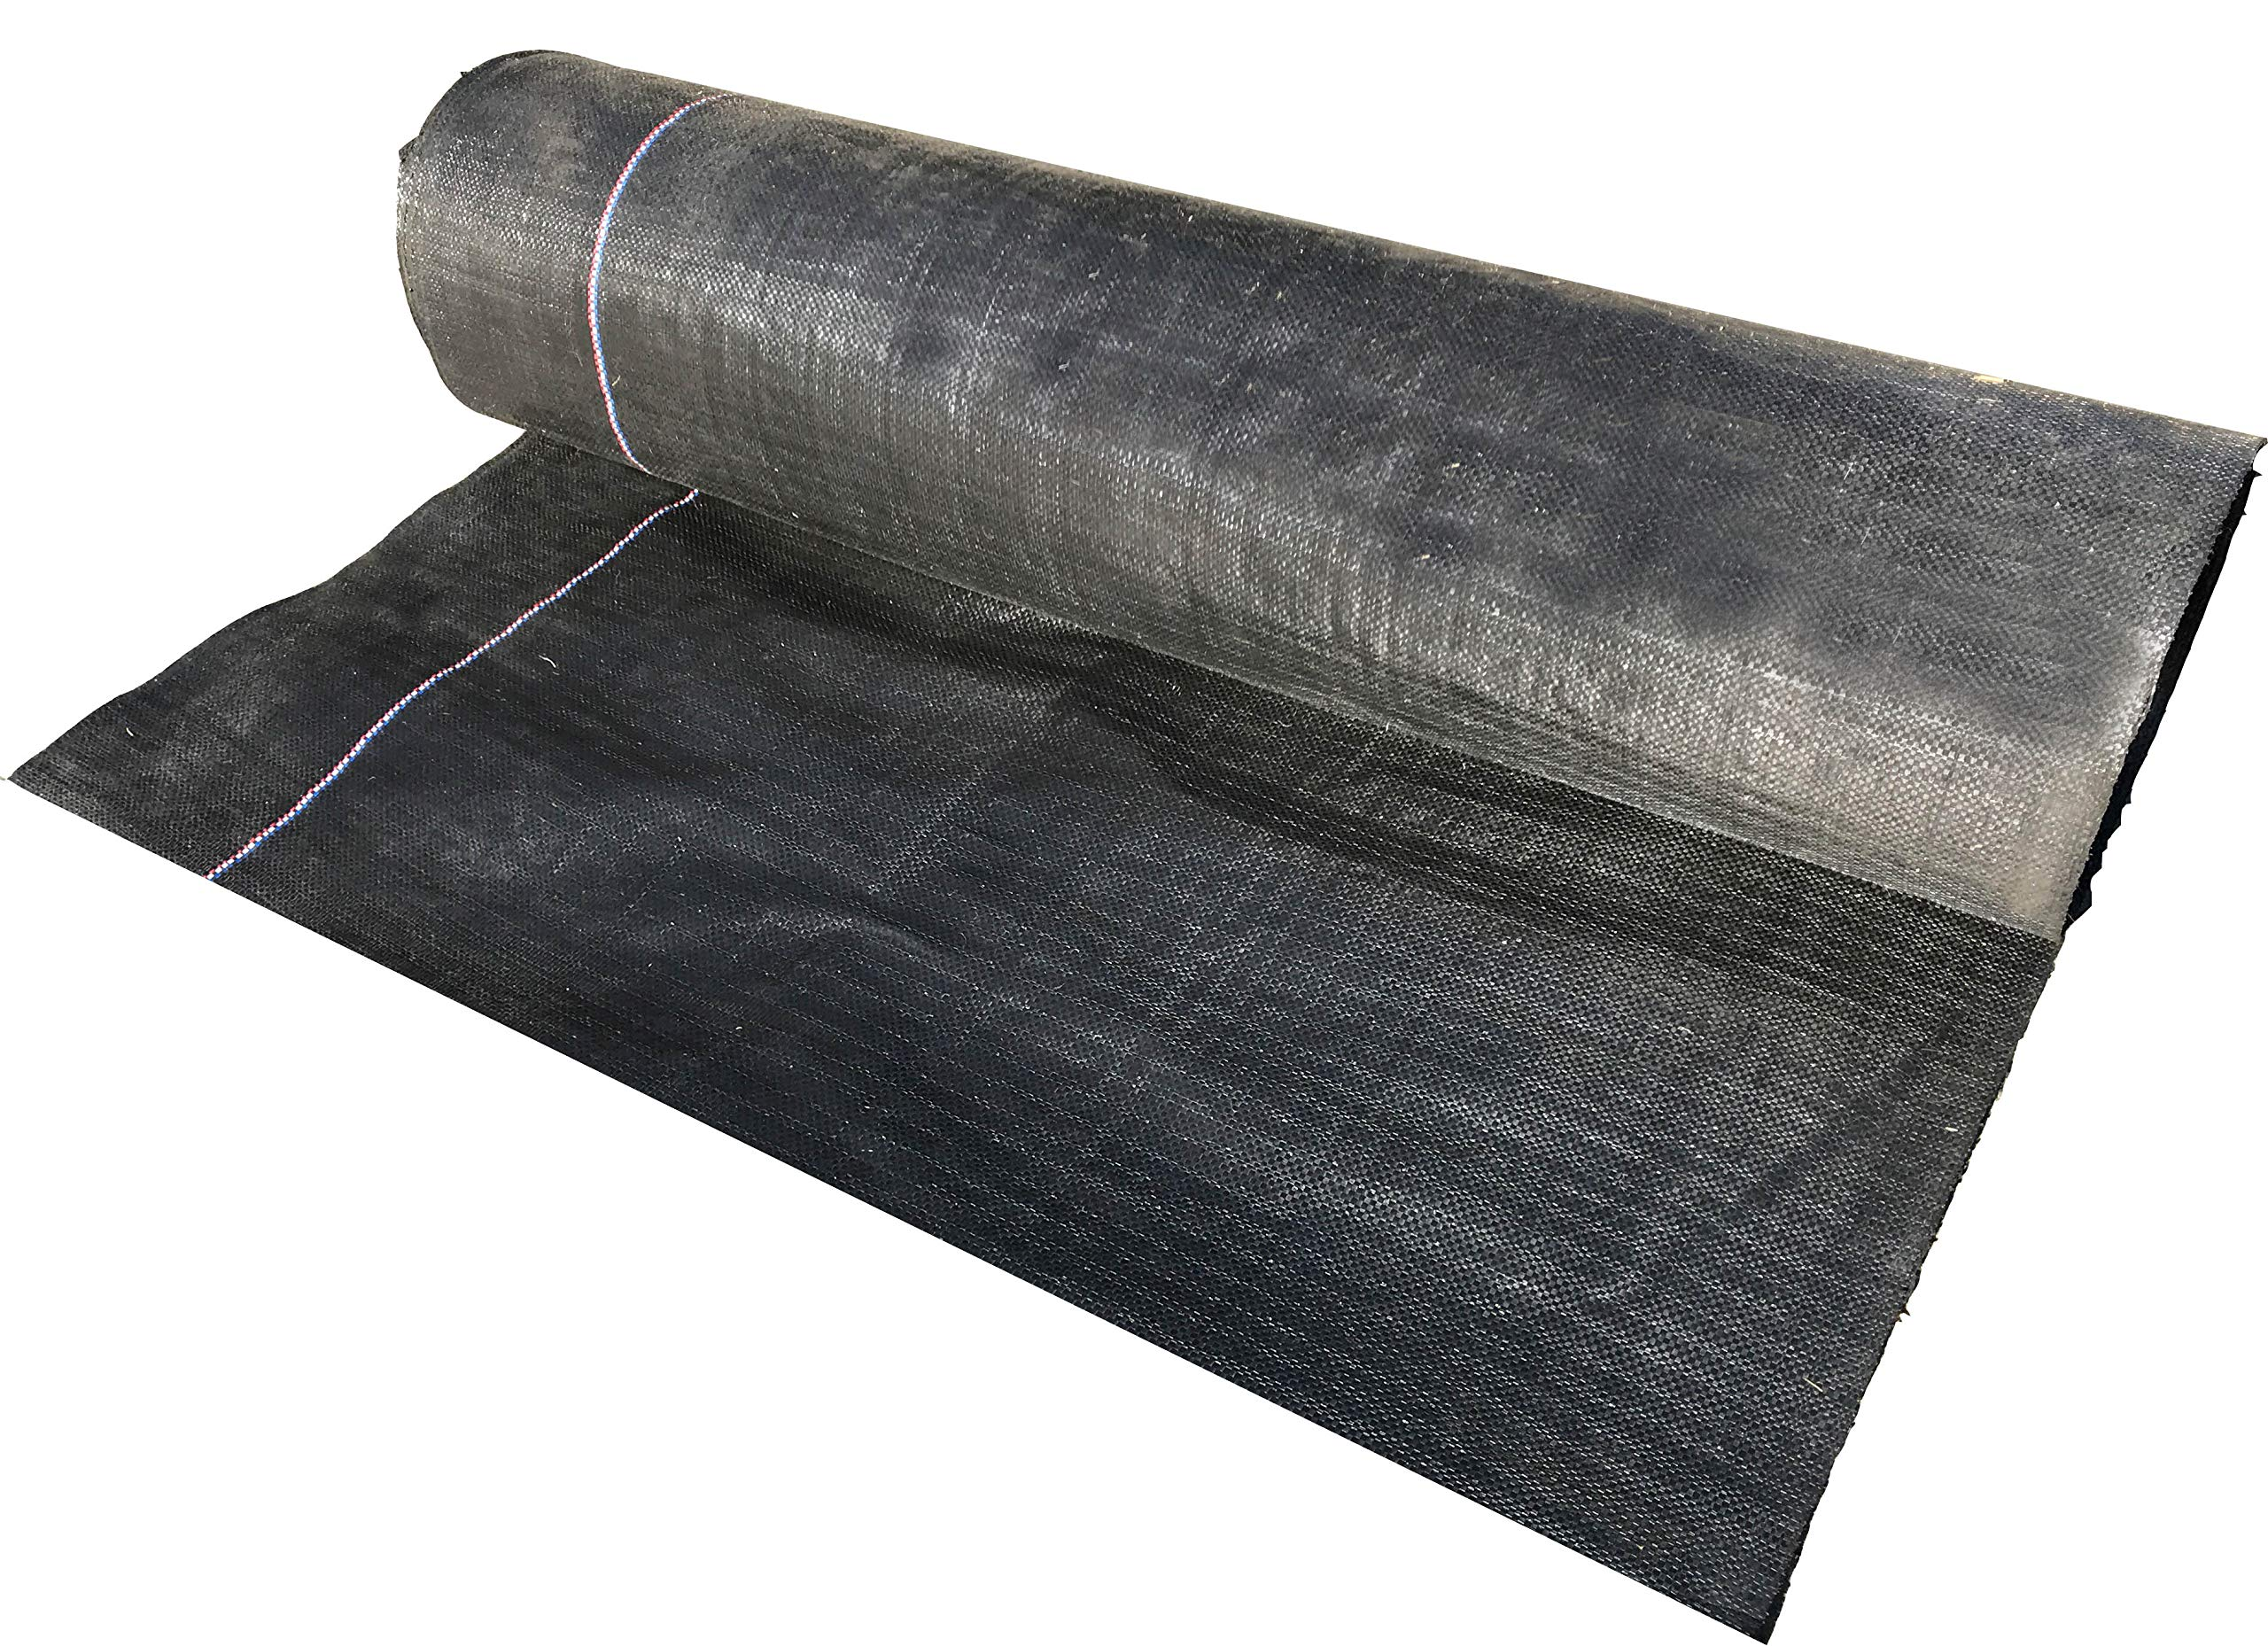 Sandbaggy Landscape Fabric - for Weed Barrier, Ground Cover, Garden Fabric (3 ft x 500 ft Roll) by Sandbaggy (Image #1)